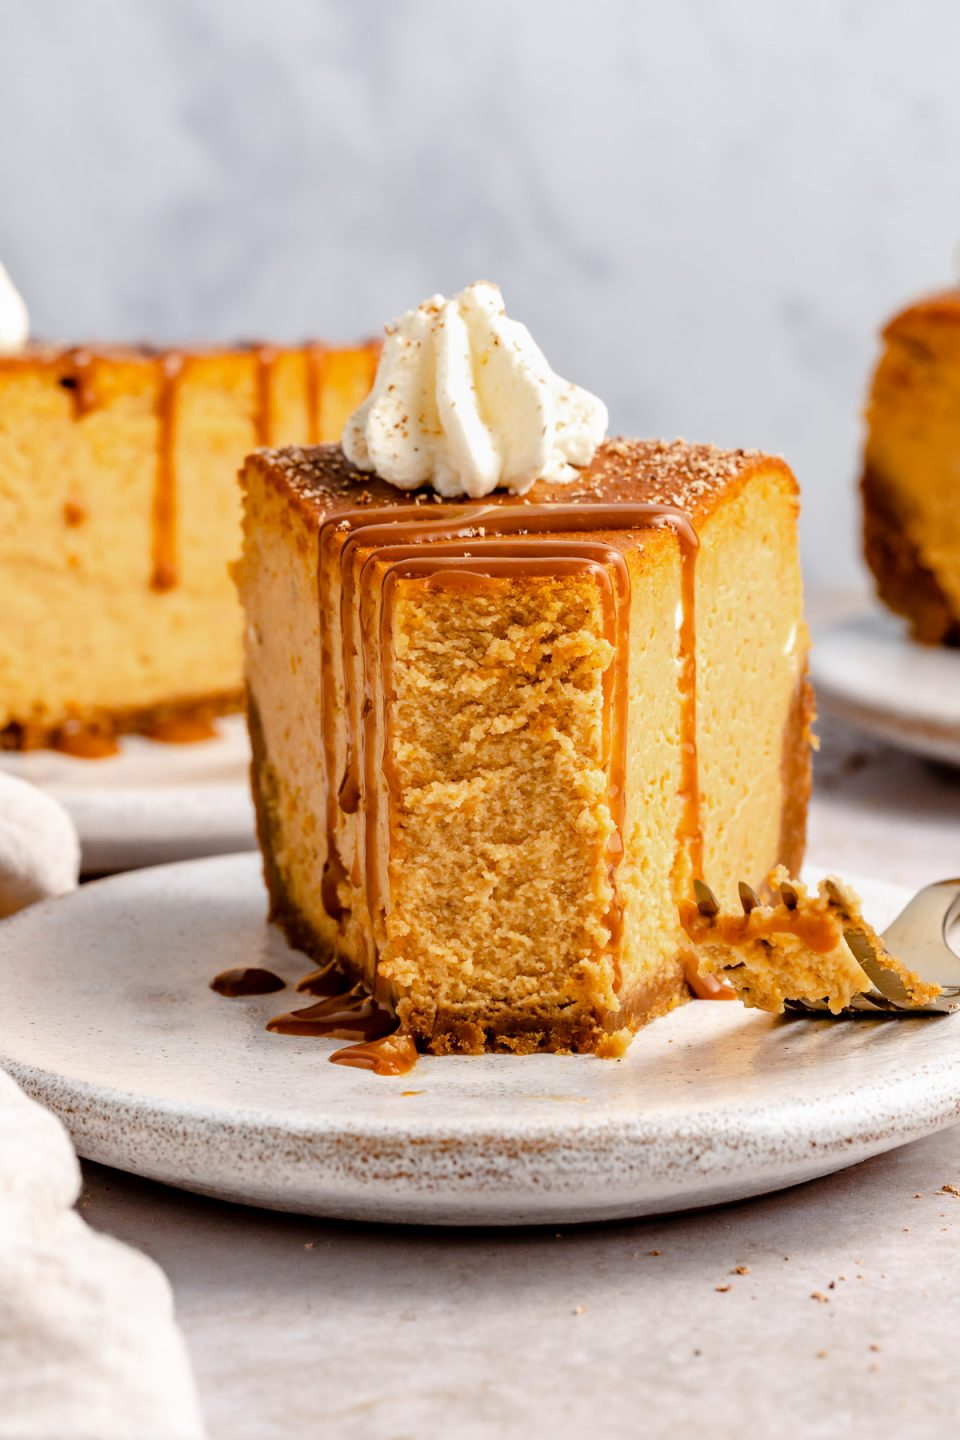 A bite taken out of a slice of pumpkin cheesecake.